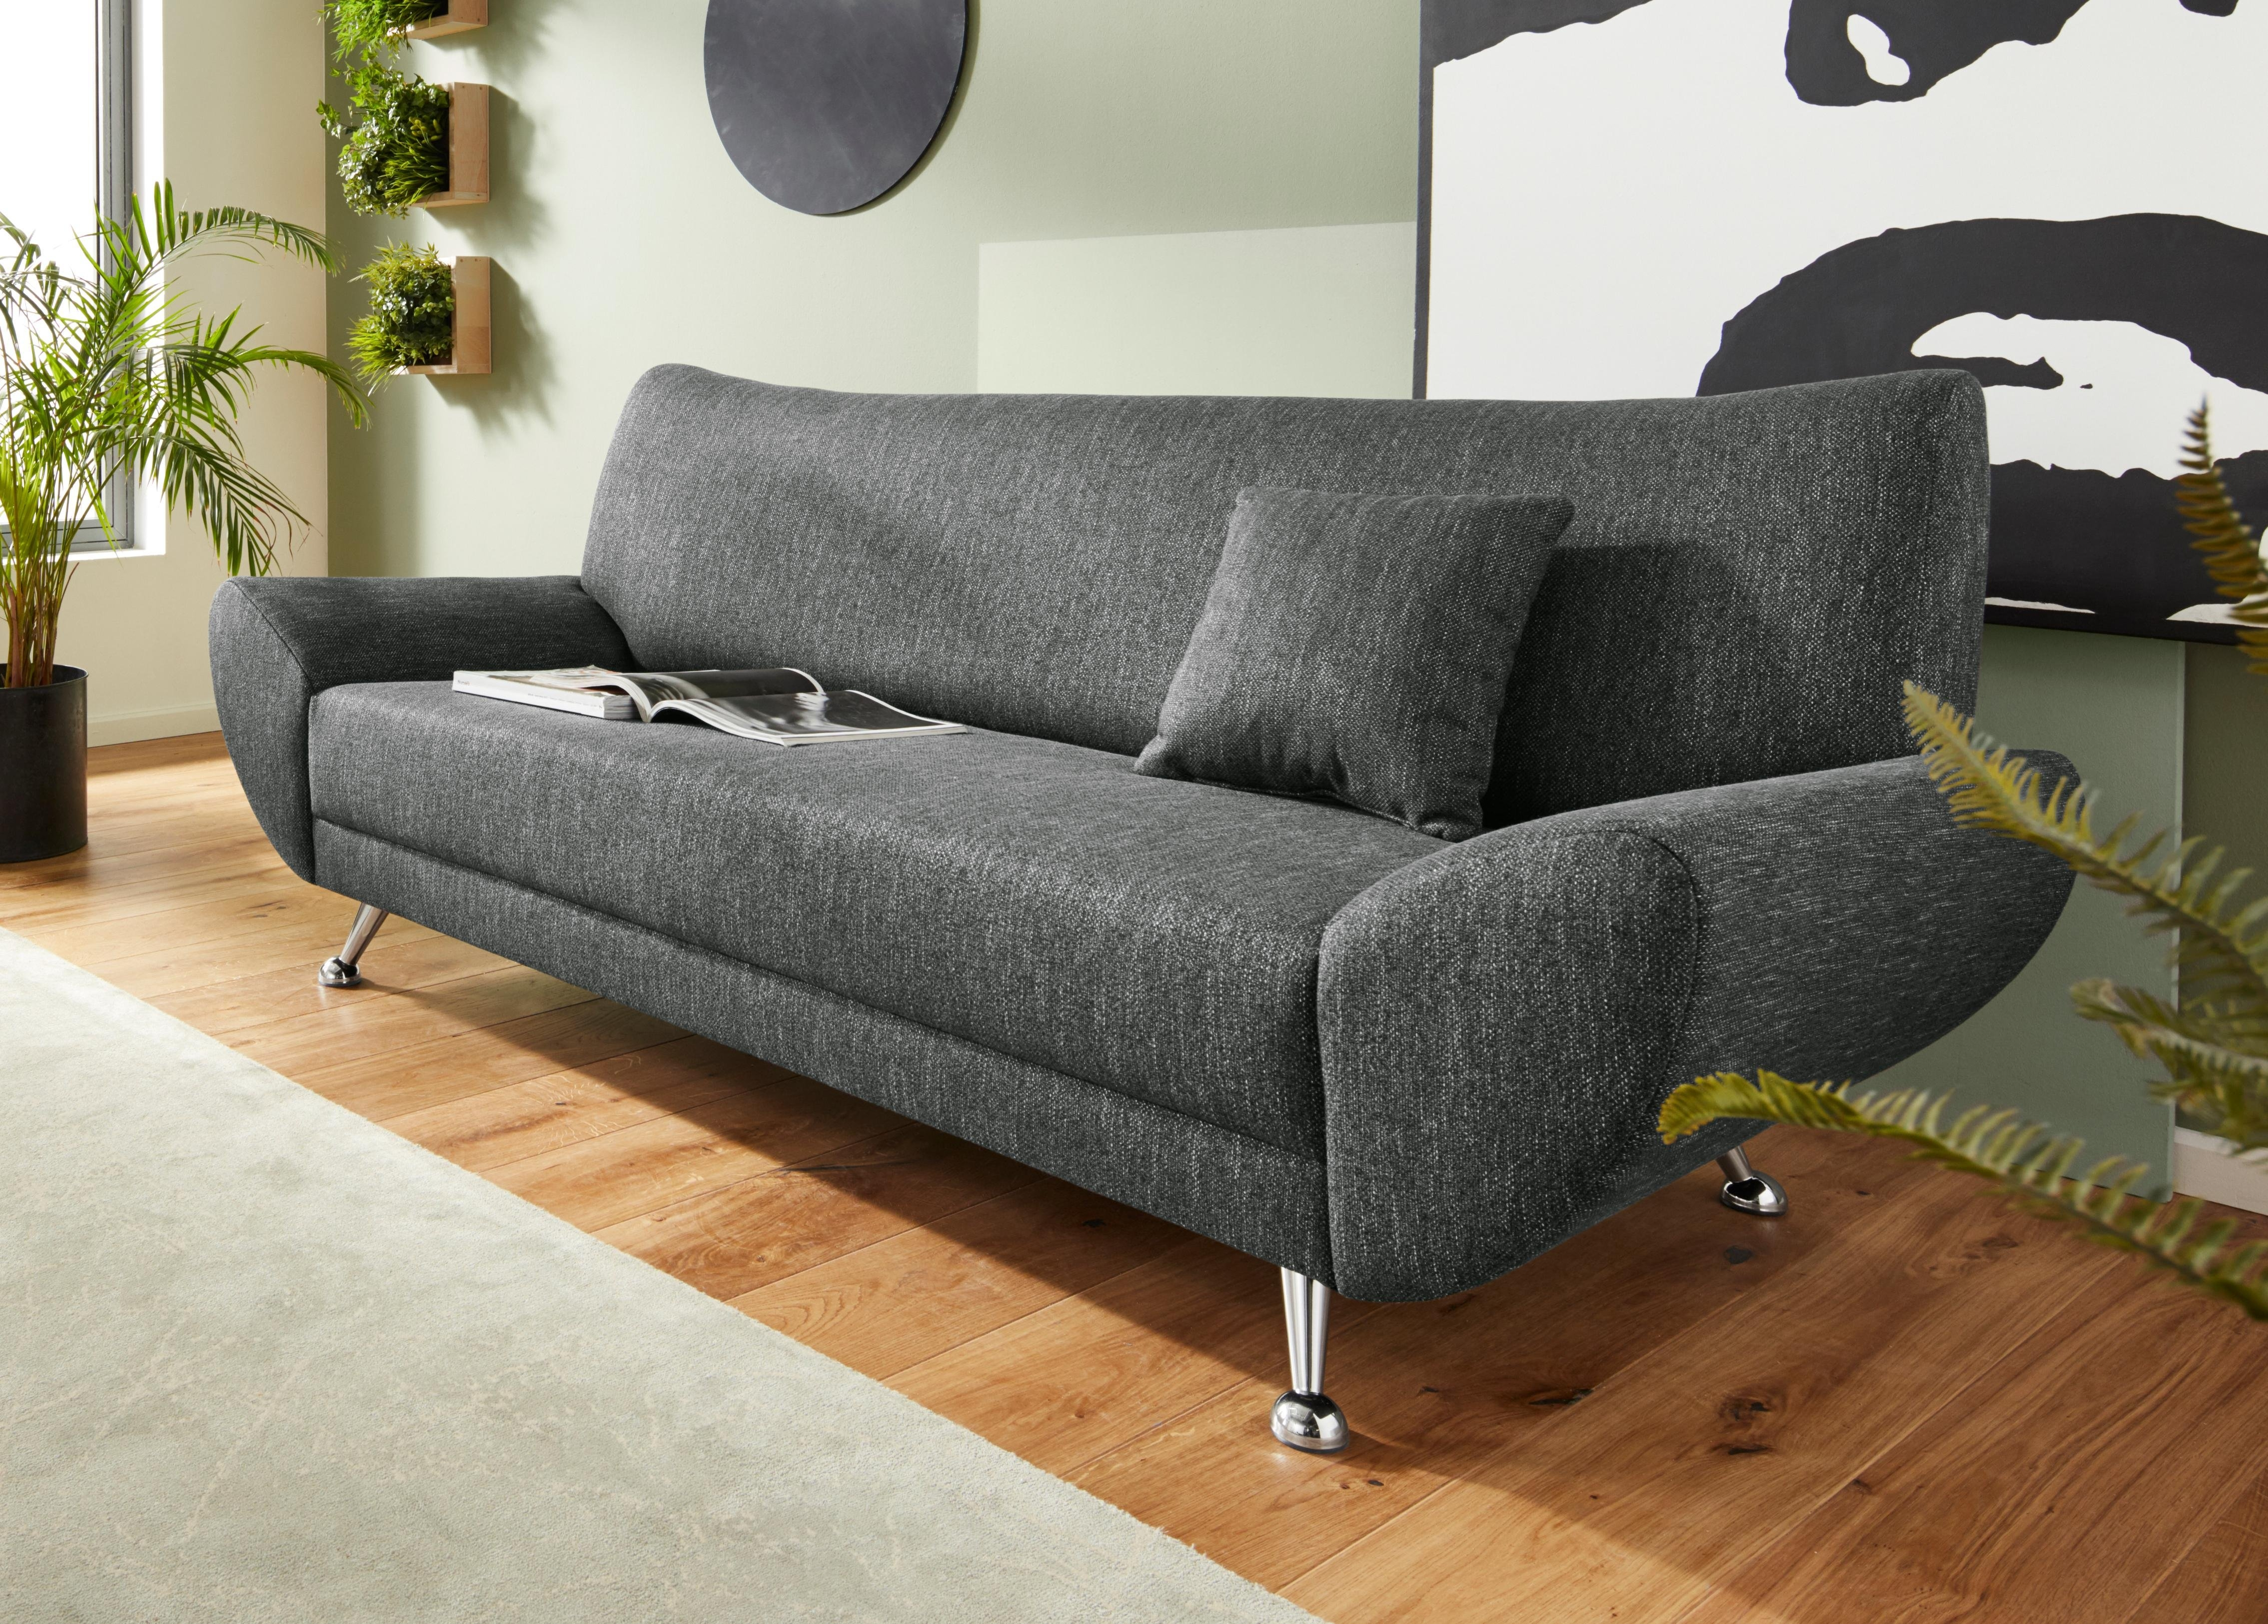 benformato sofa beautiful home polsterecke mit with benformato sofa benformato city benformato. Black Bedroom Furniture Sets. Home Design Ideas